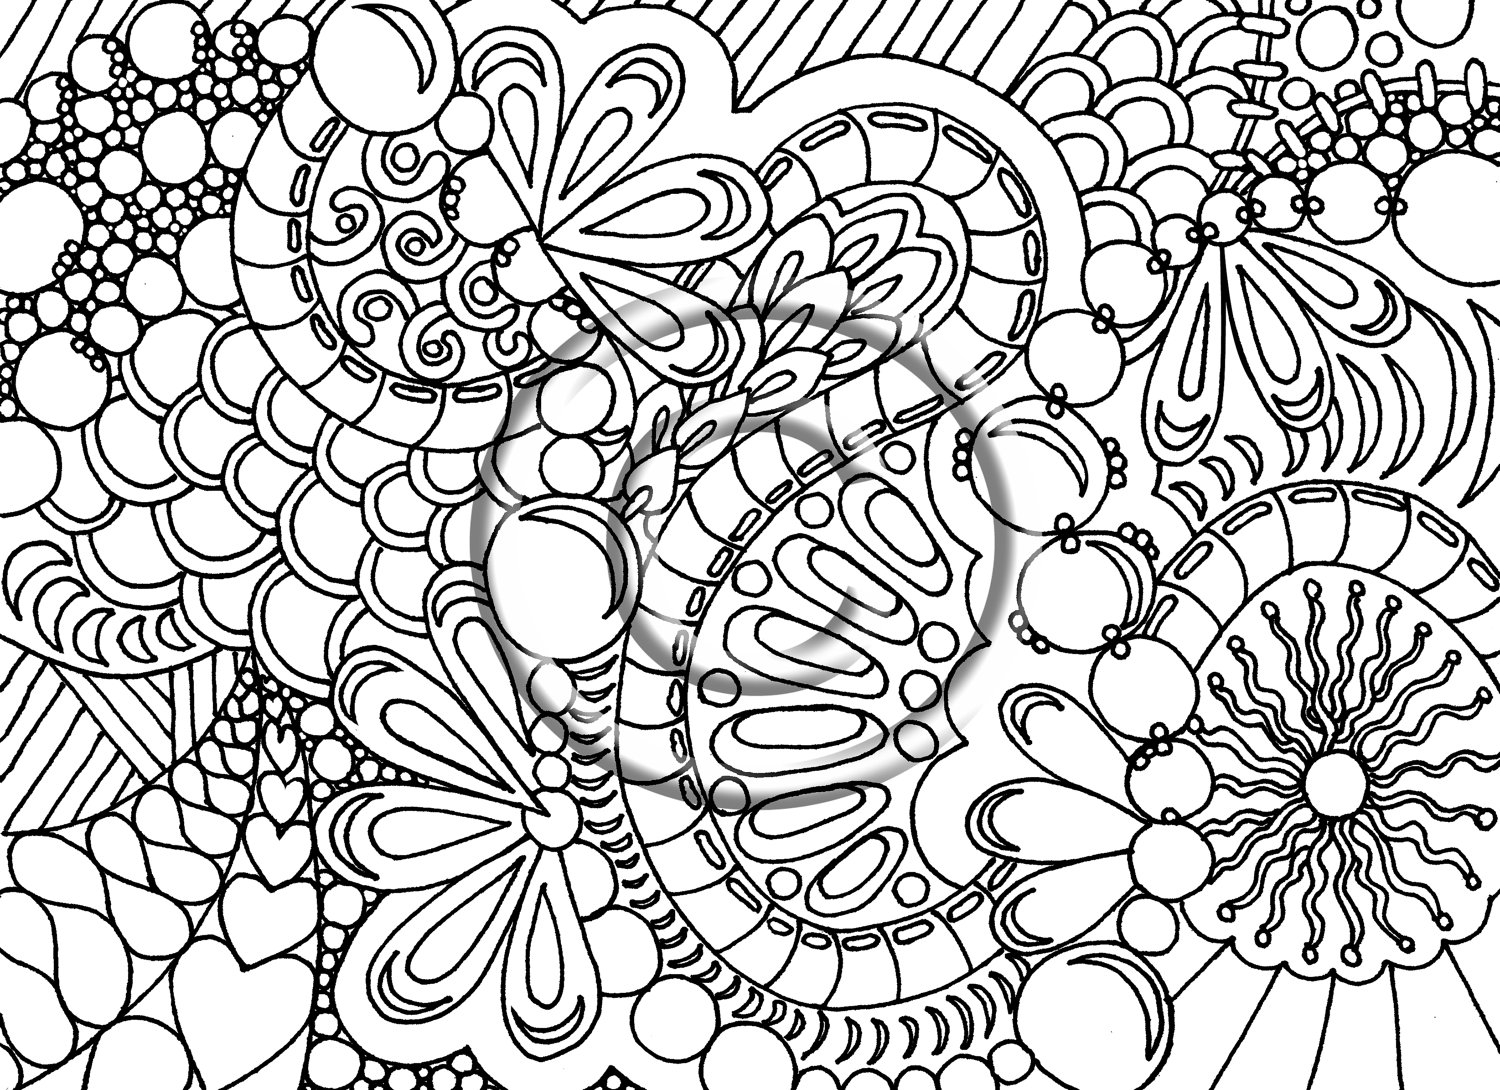 difficult coloring pages for teenagers coloring pages of flowers for teenagers difficult coloring pages for teenagers difficult